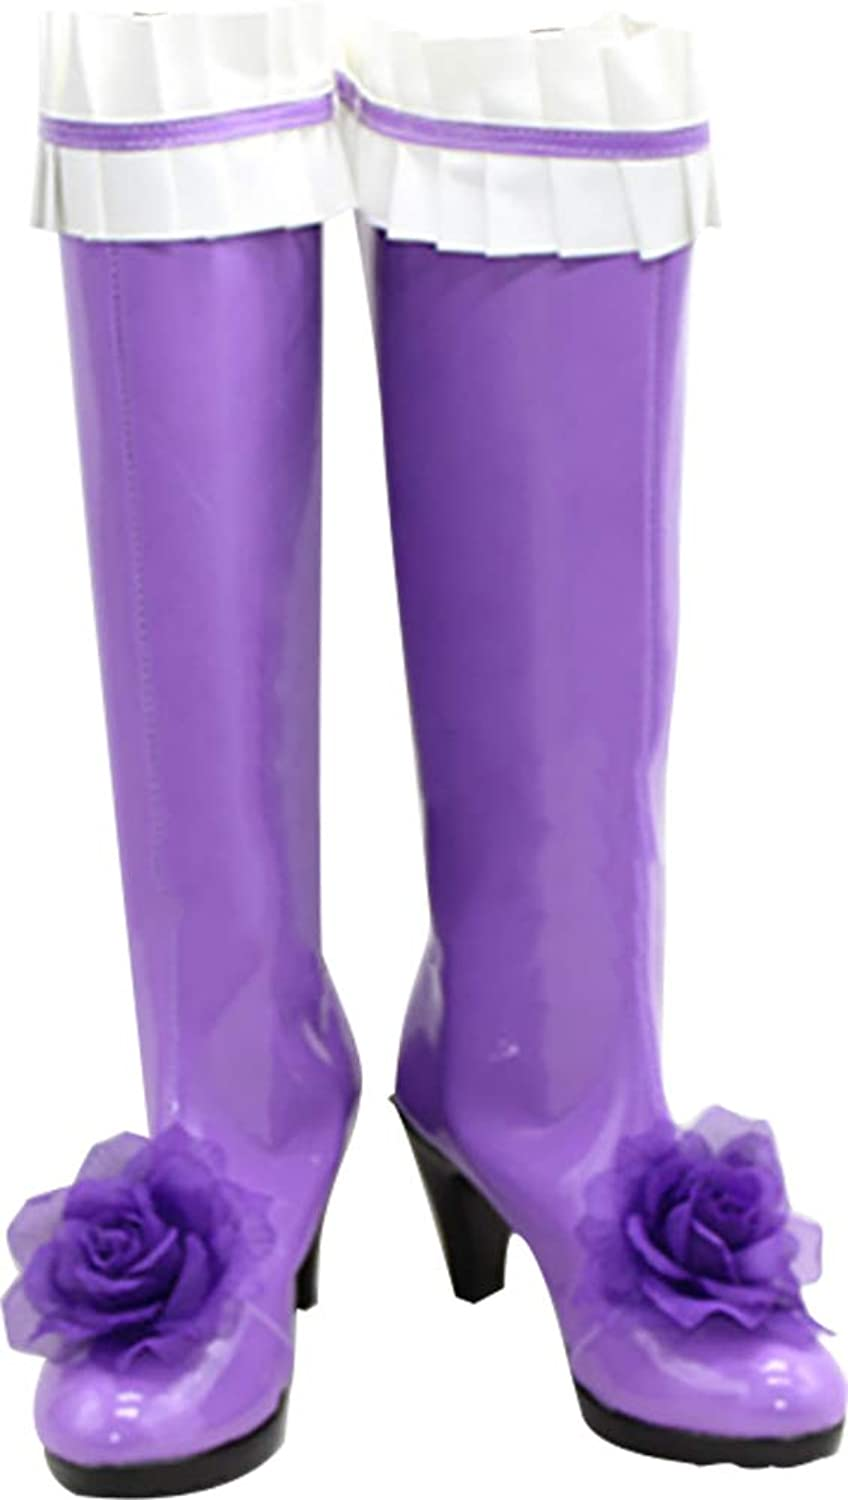 Whirl Cosplay Boots shoes for Rozen Maiden pinkn Kristall